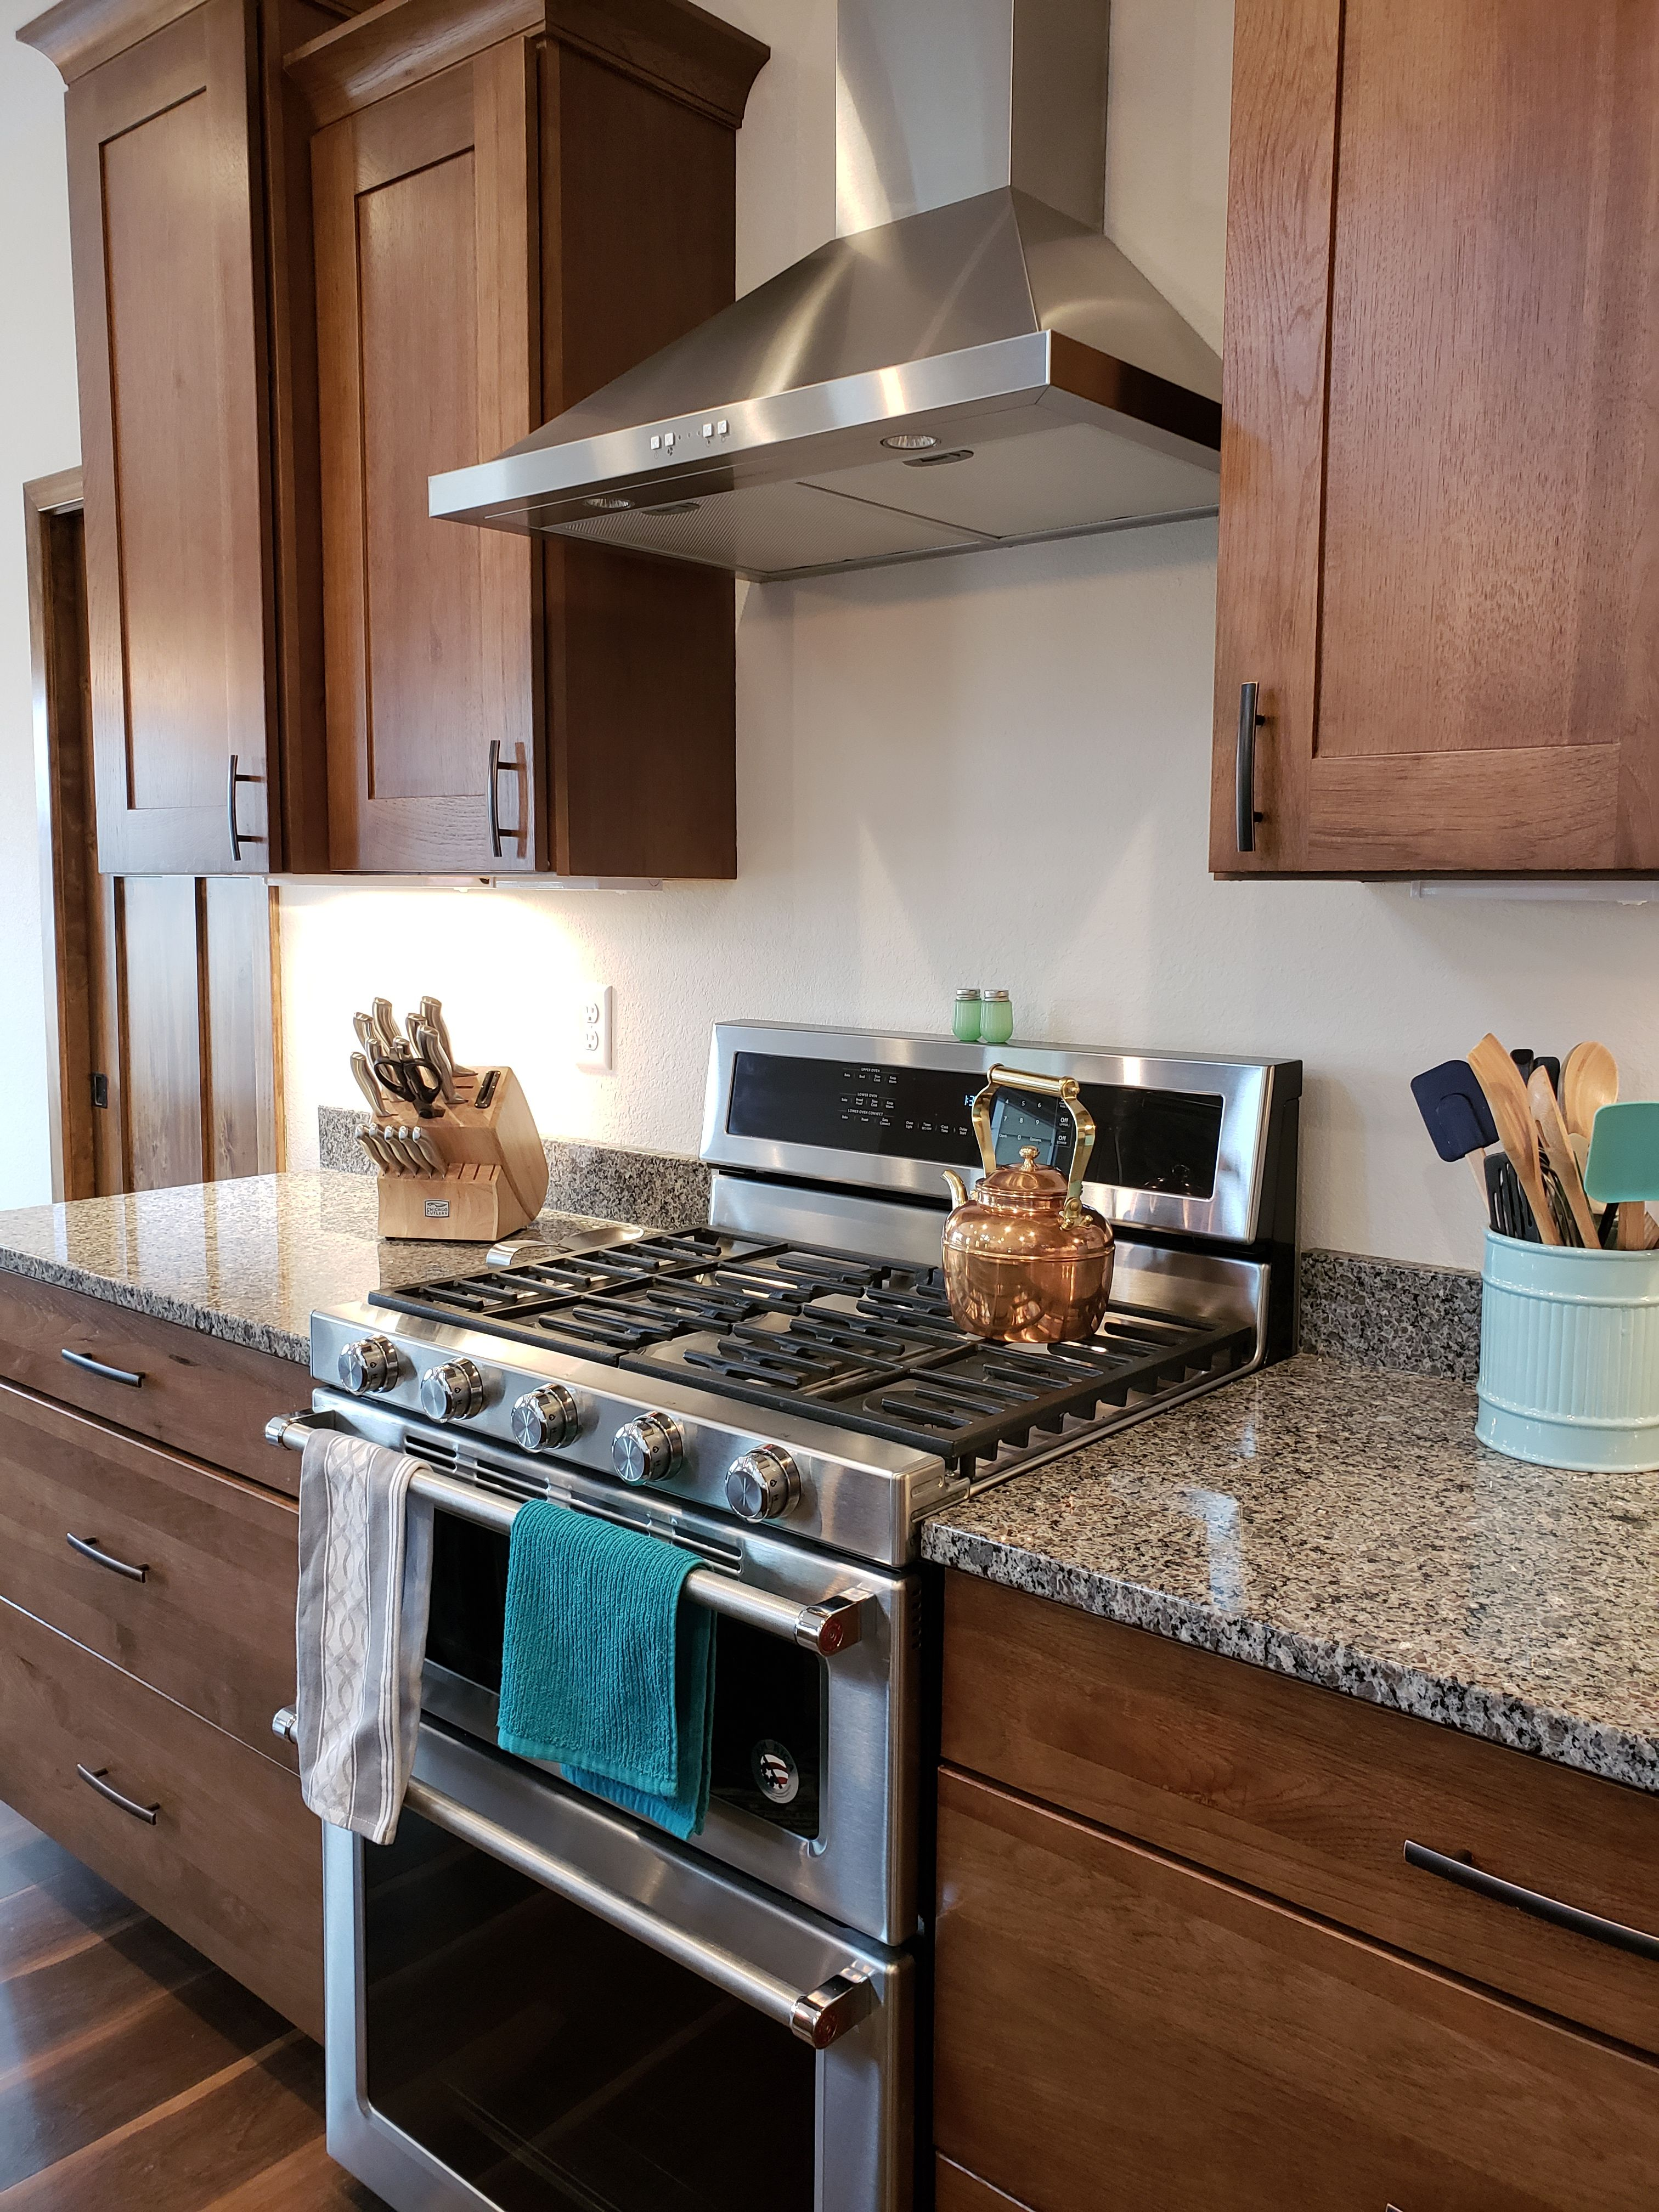 Gas range with stainless steel hood vent in new